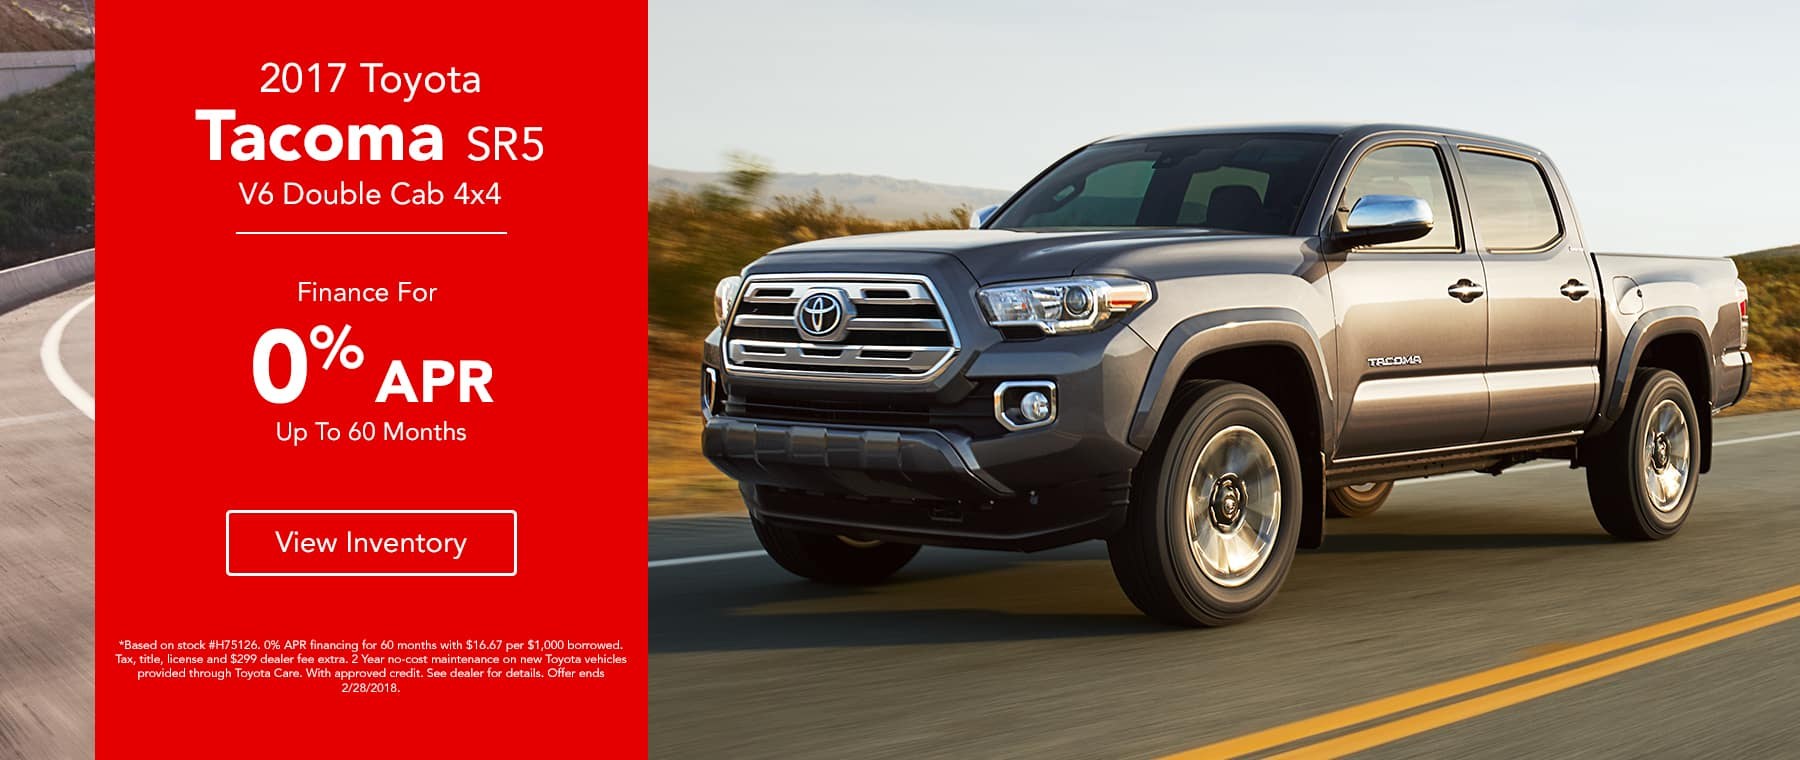 Legends Toyota - 0% Financing Up To 60 Months